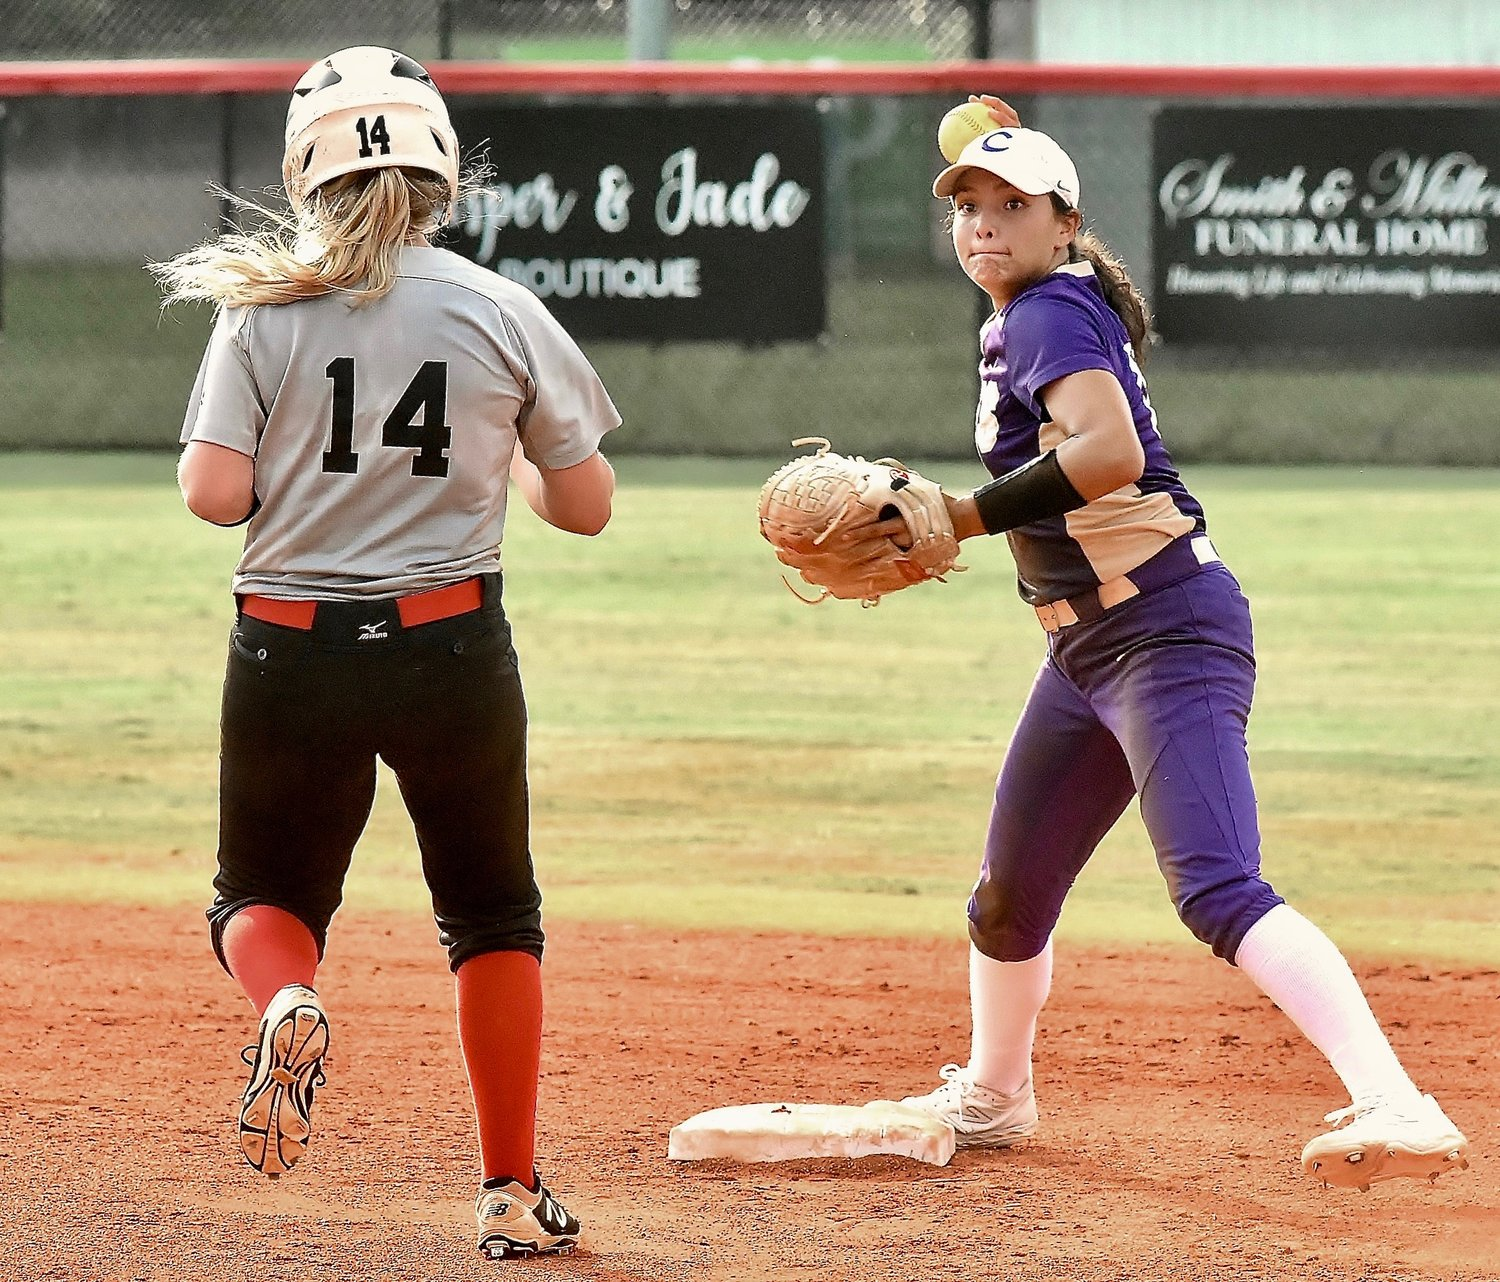 Cartersville senior shortstop Cio Seigler gets a forceout at second base but is unable to complete the double play during Thursday's 5-4 road win over Cedartown. Seigler finished 2-for-3 with a walk and a run scored.